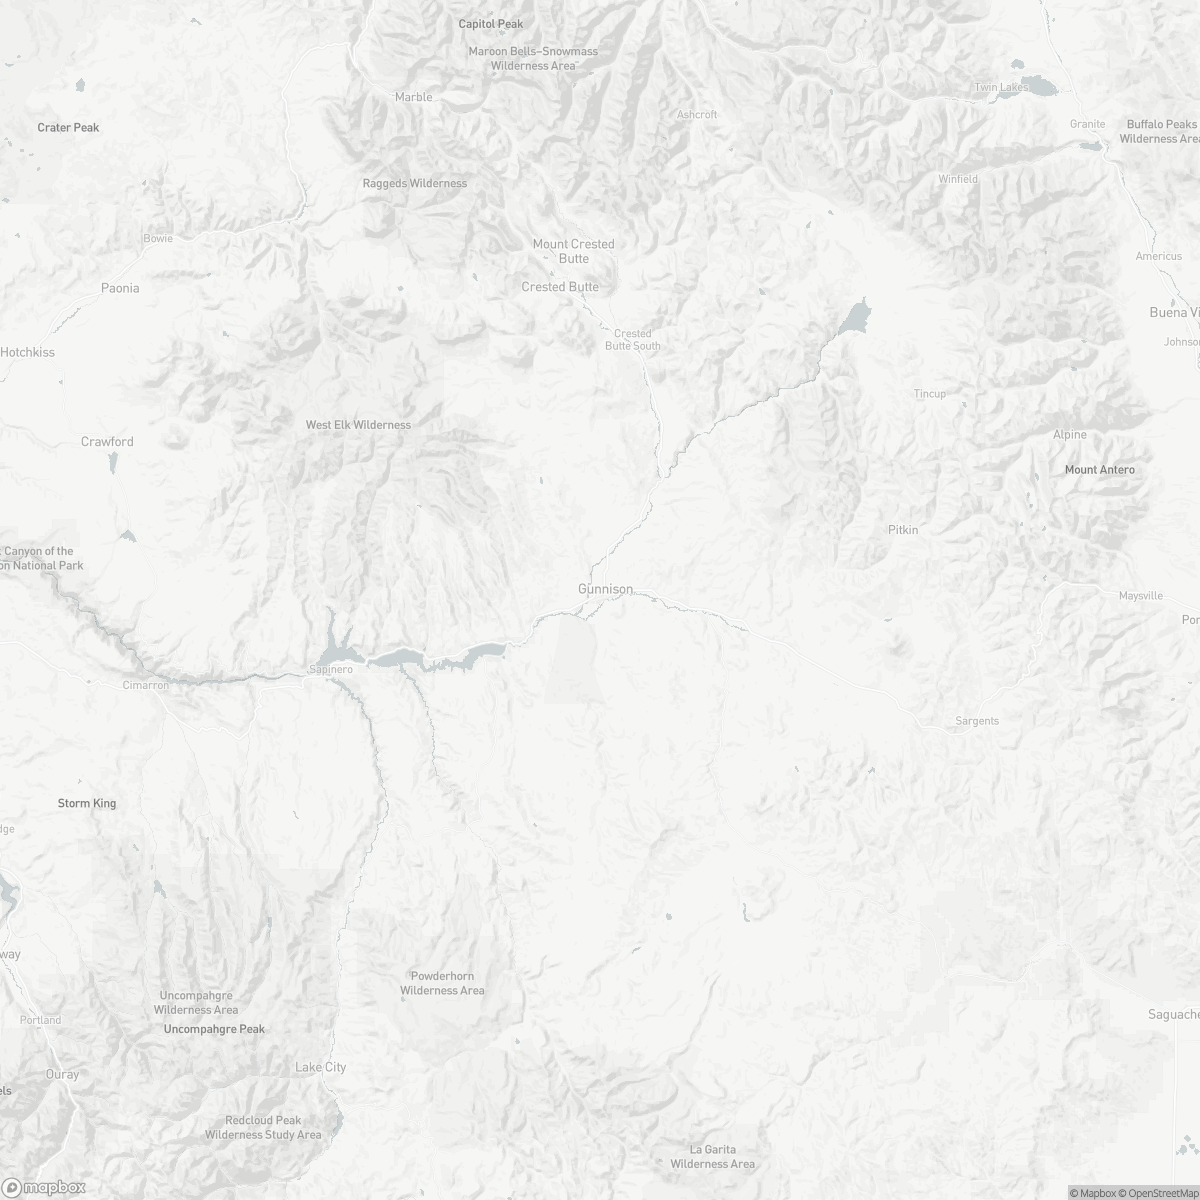 Map of Gunnison Crested Butte Regional Airport GUC surrounding area of Gunnison Colorado